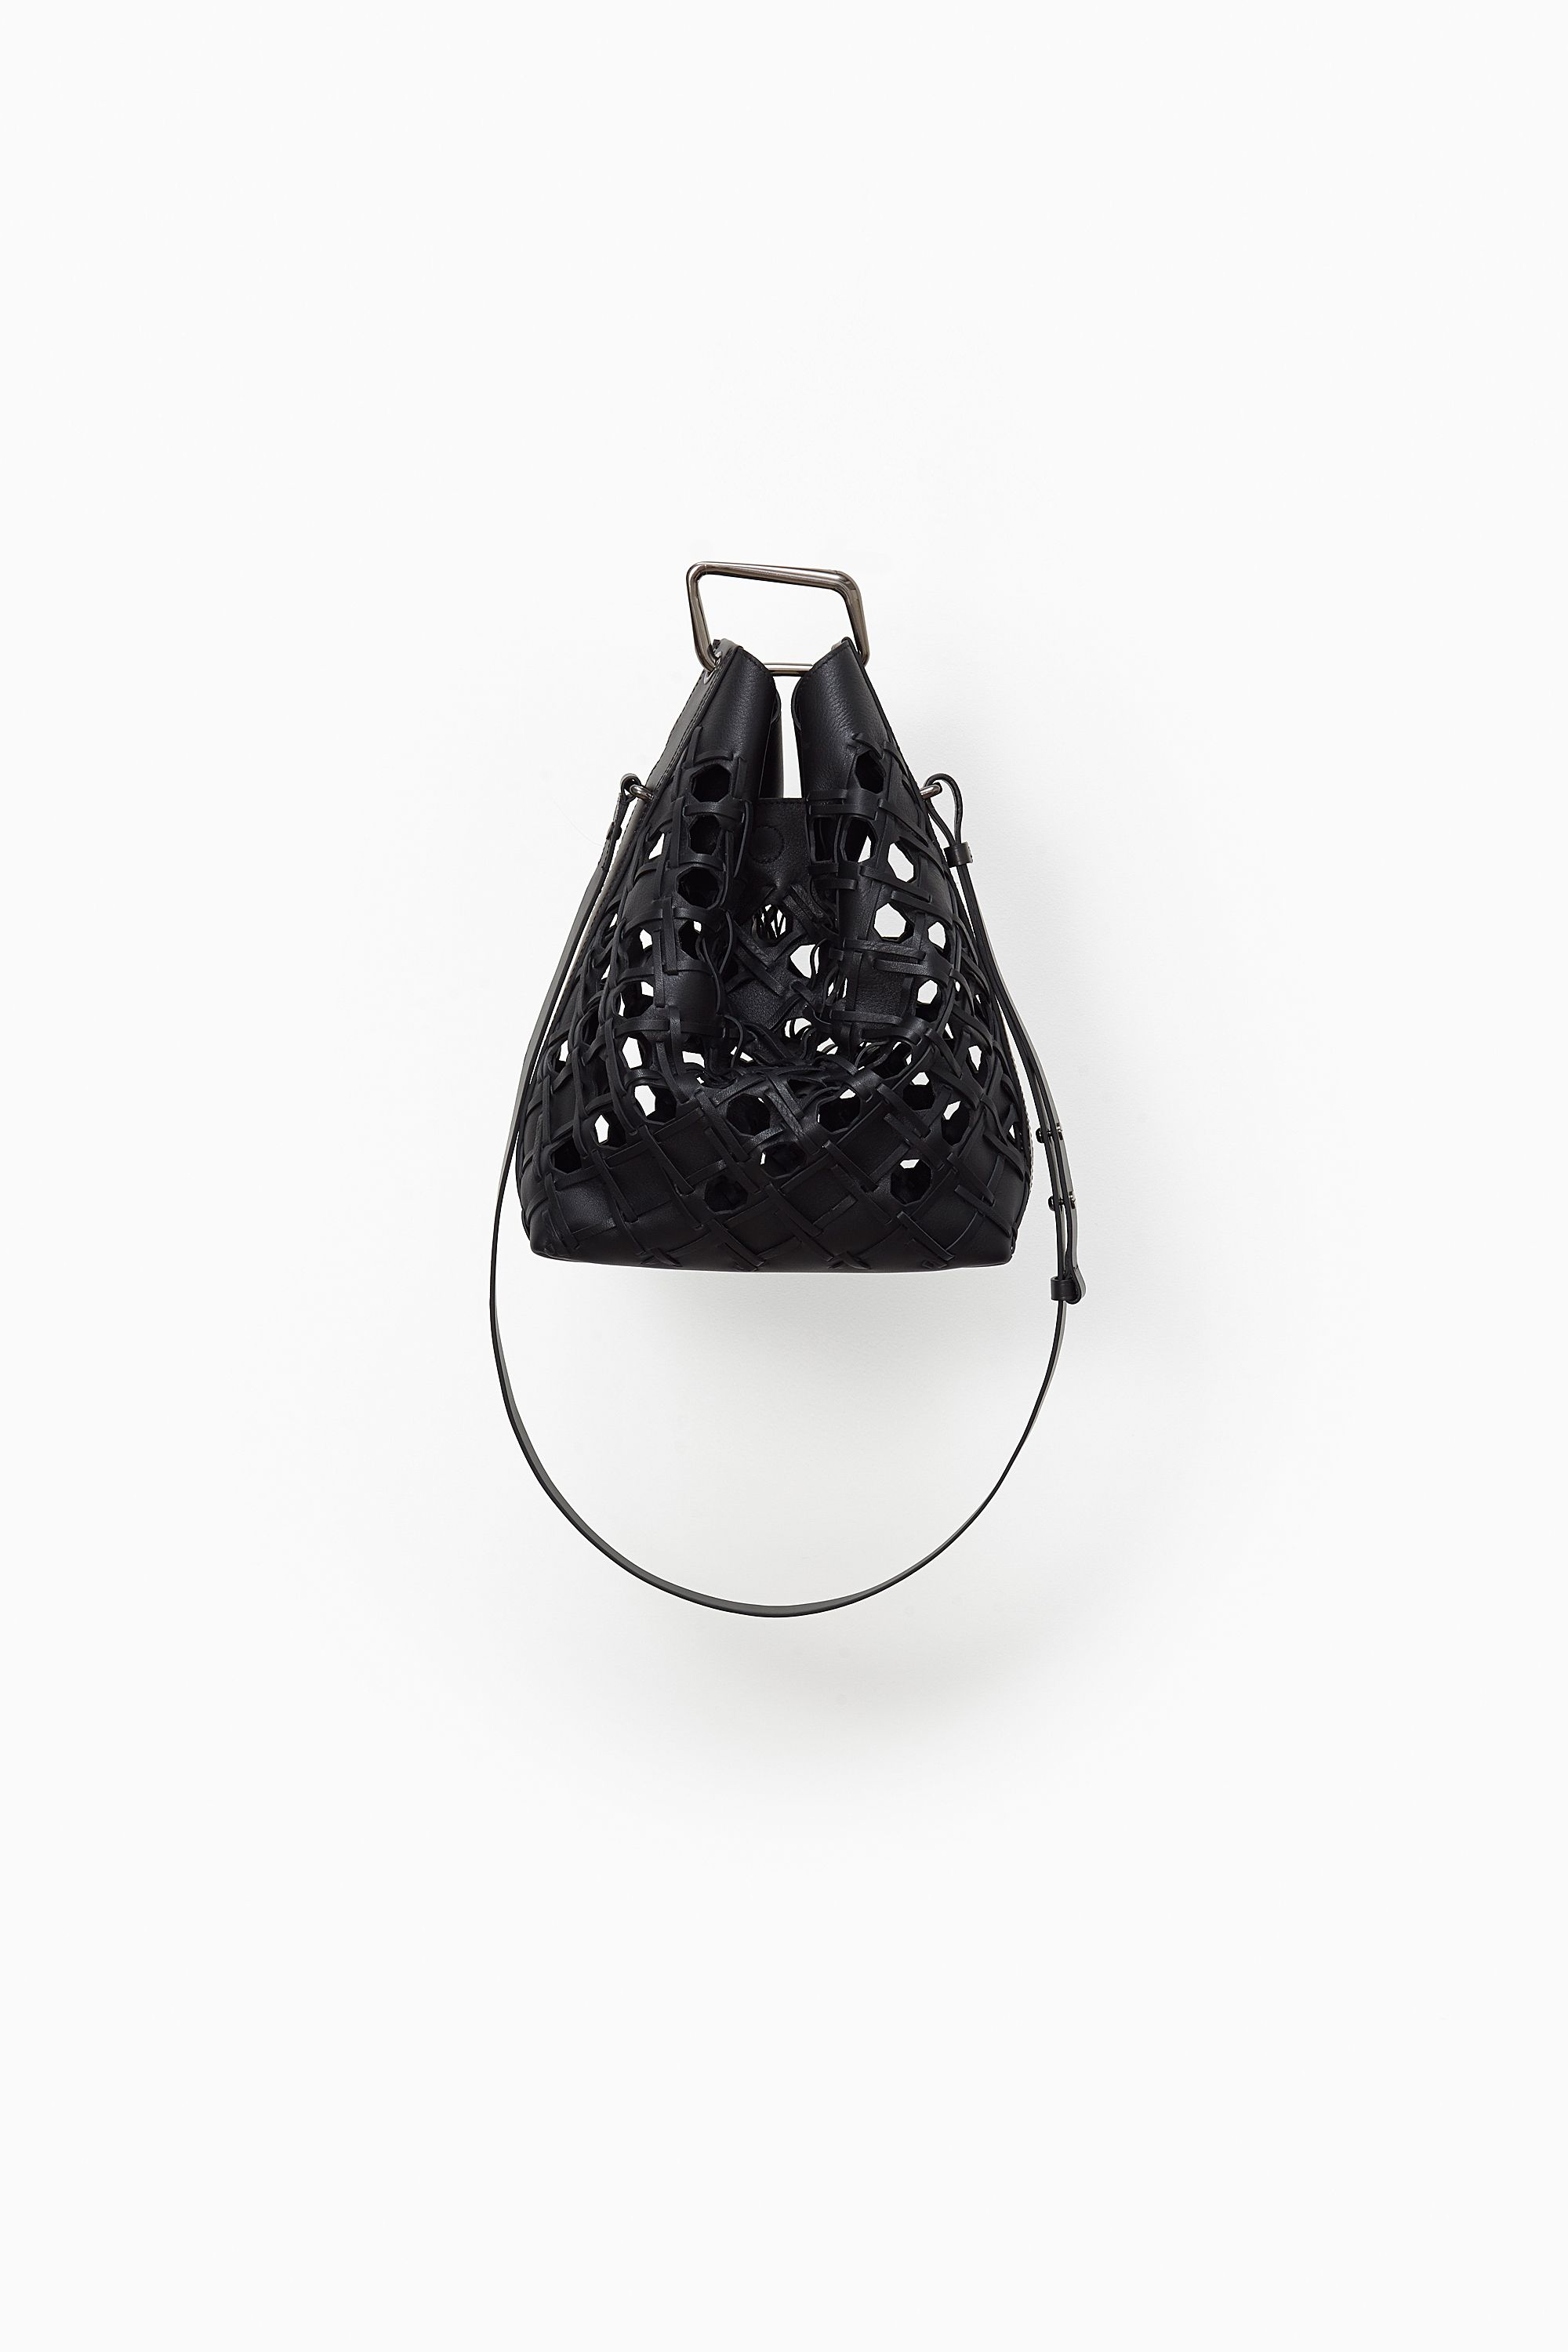 "3.1 Phillip Lim Bucket Bag, $1,395&#x3B; <a target=""_blank"" href=""https://www.31philliplim.com/shop/quill-bucket-bag-1177.html"">31philliplim.com</a>"